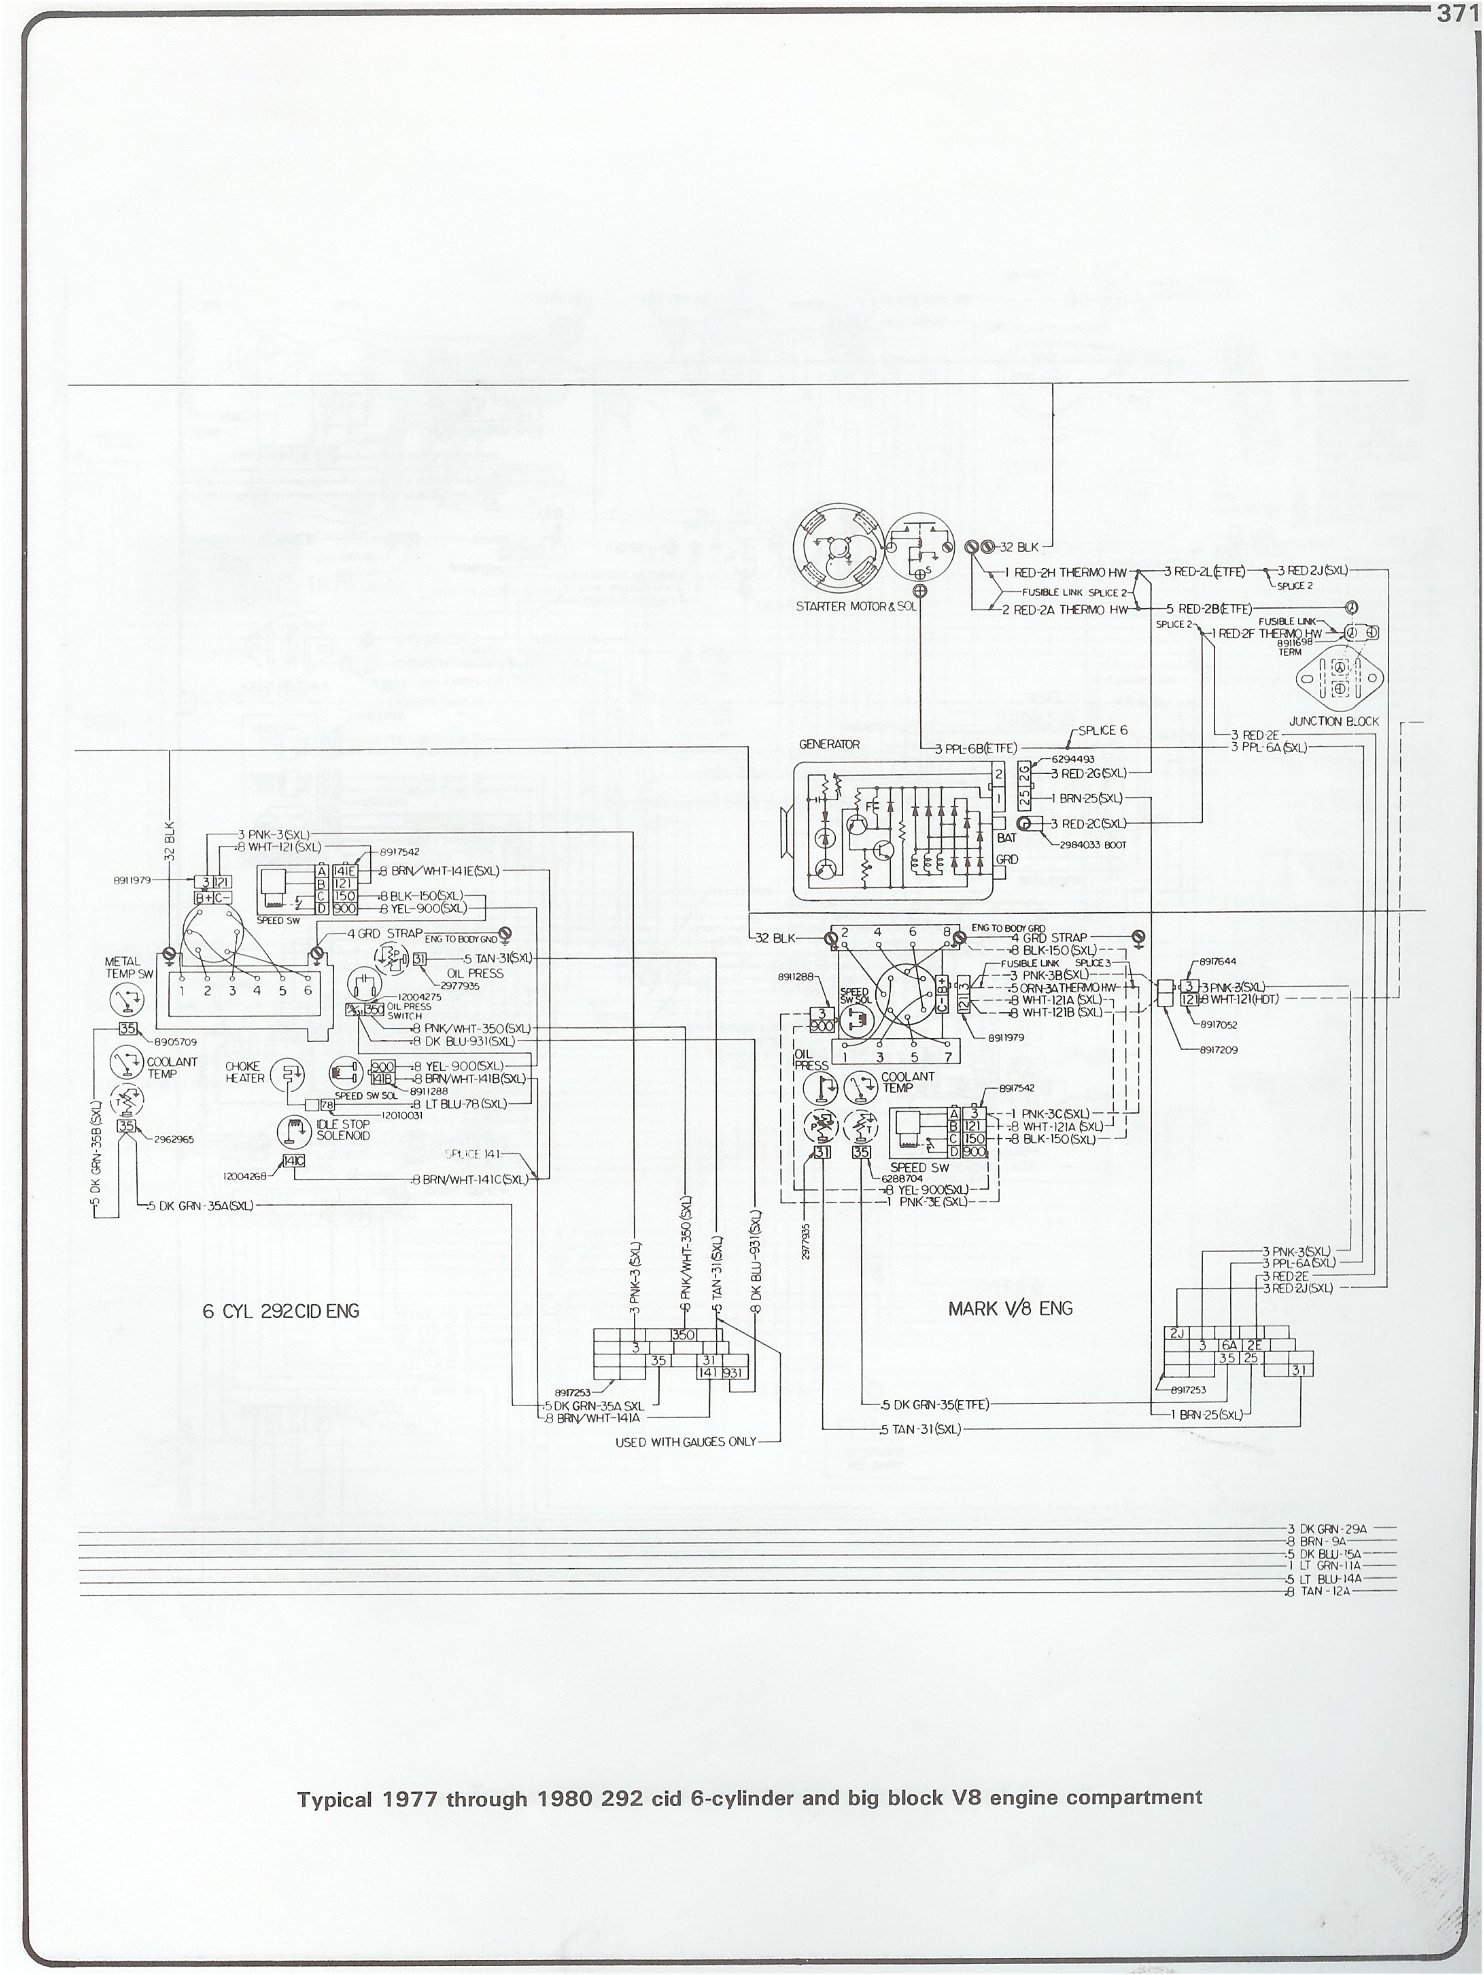 I6 Engine Diagram